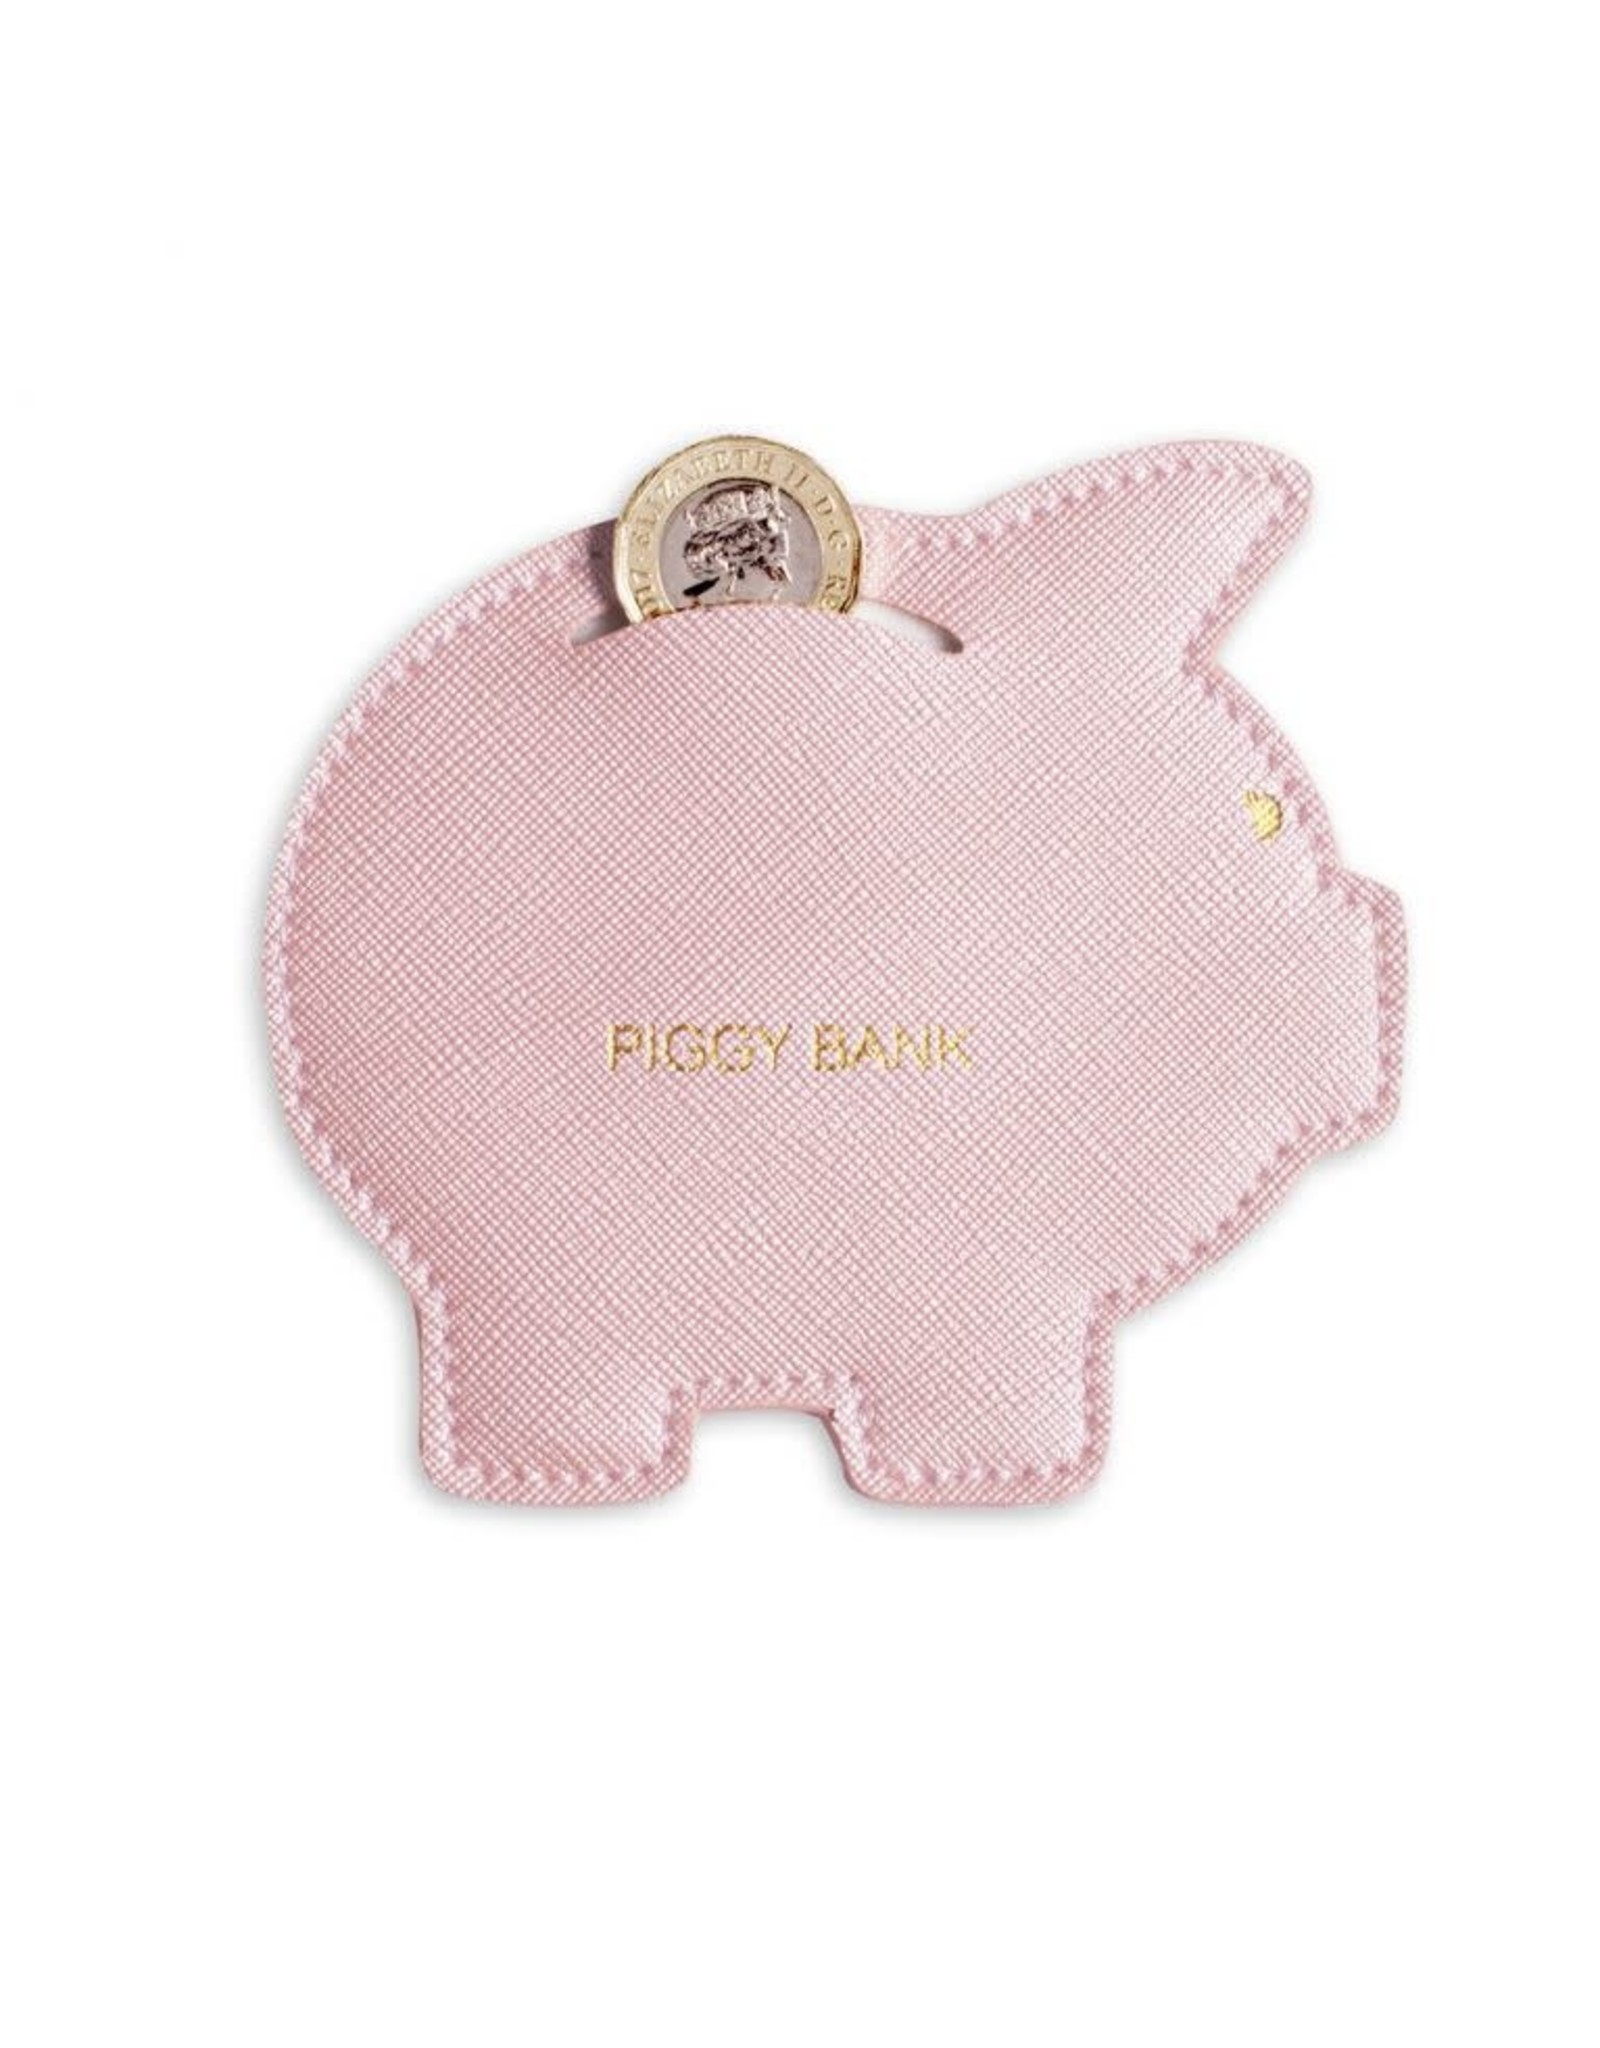 Coin Purse Piggy Bank Pink